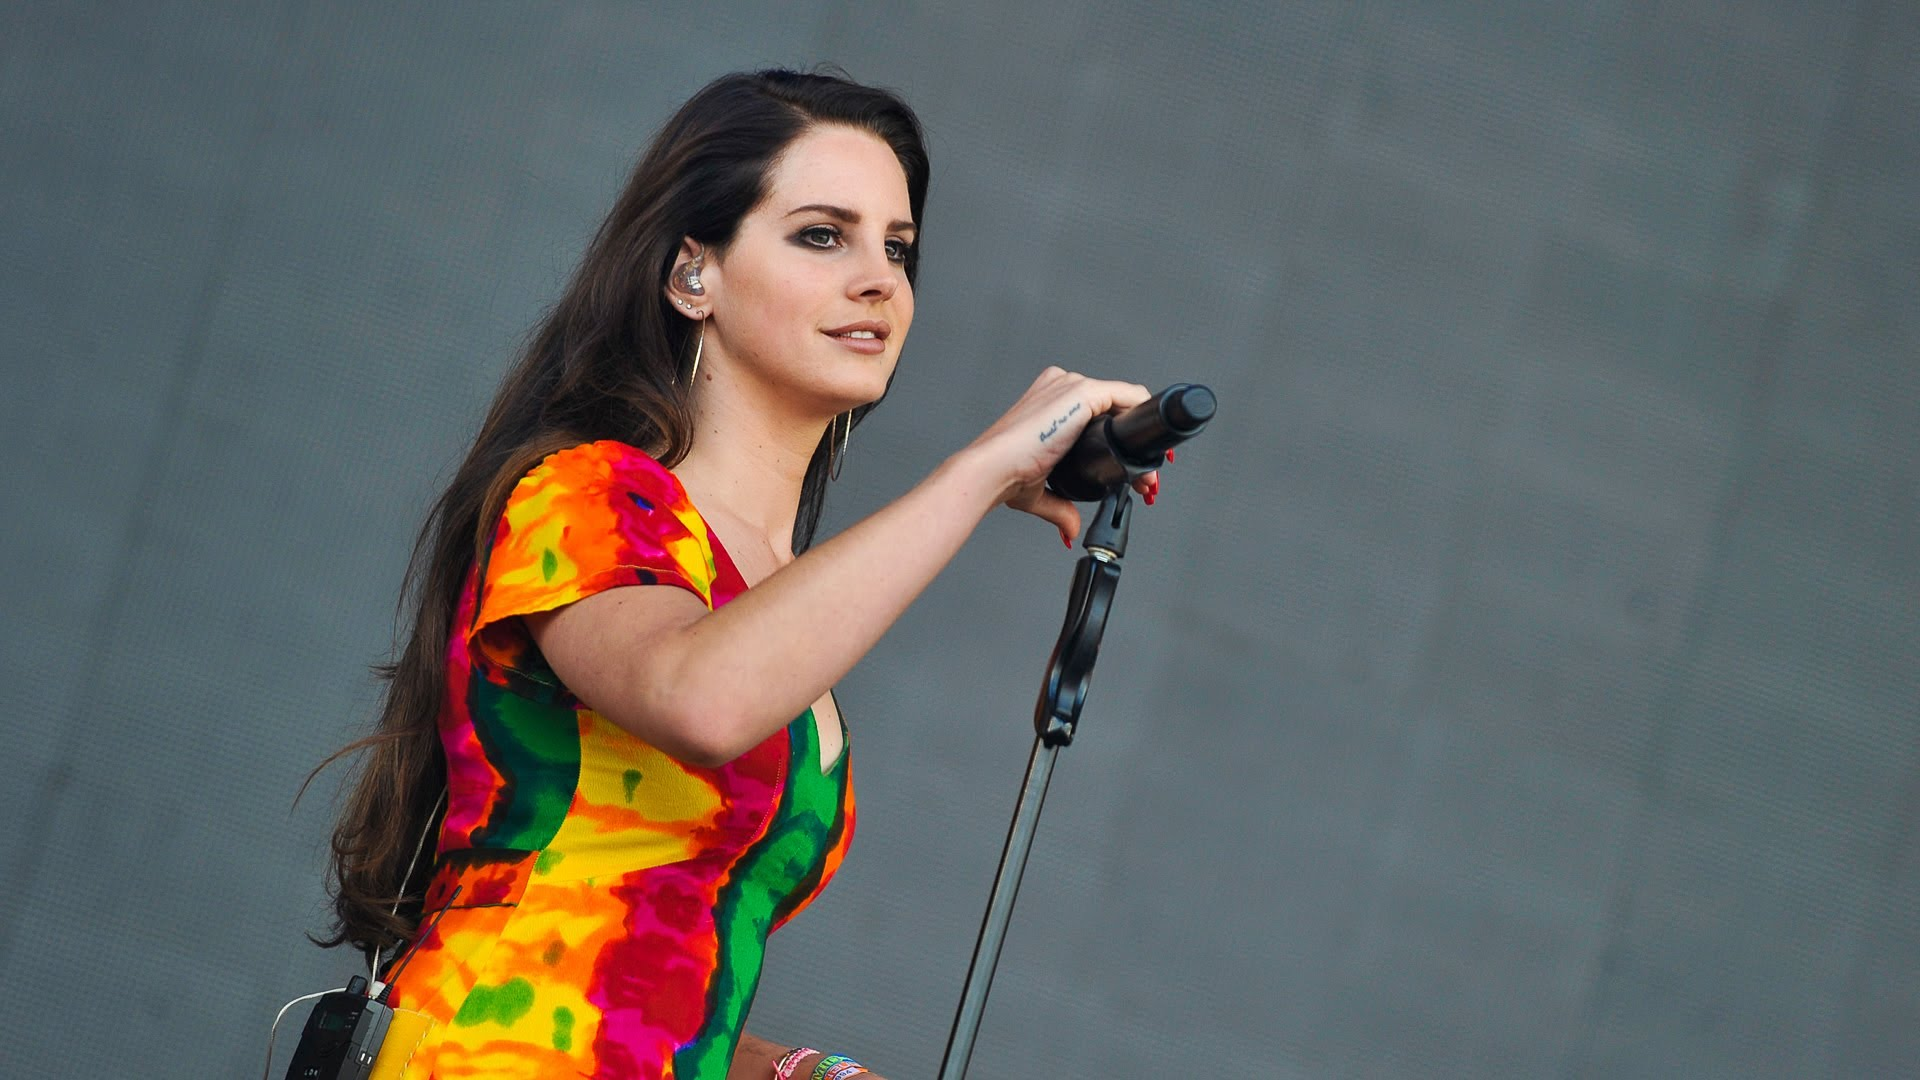 23 HD Lana Del Rey Wallpapers - HDWallSource.com